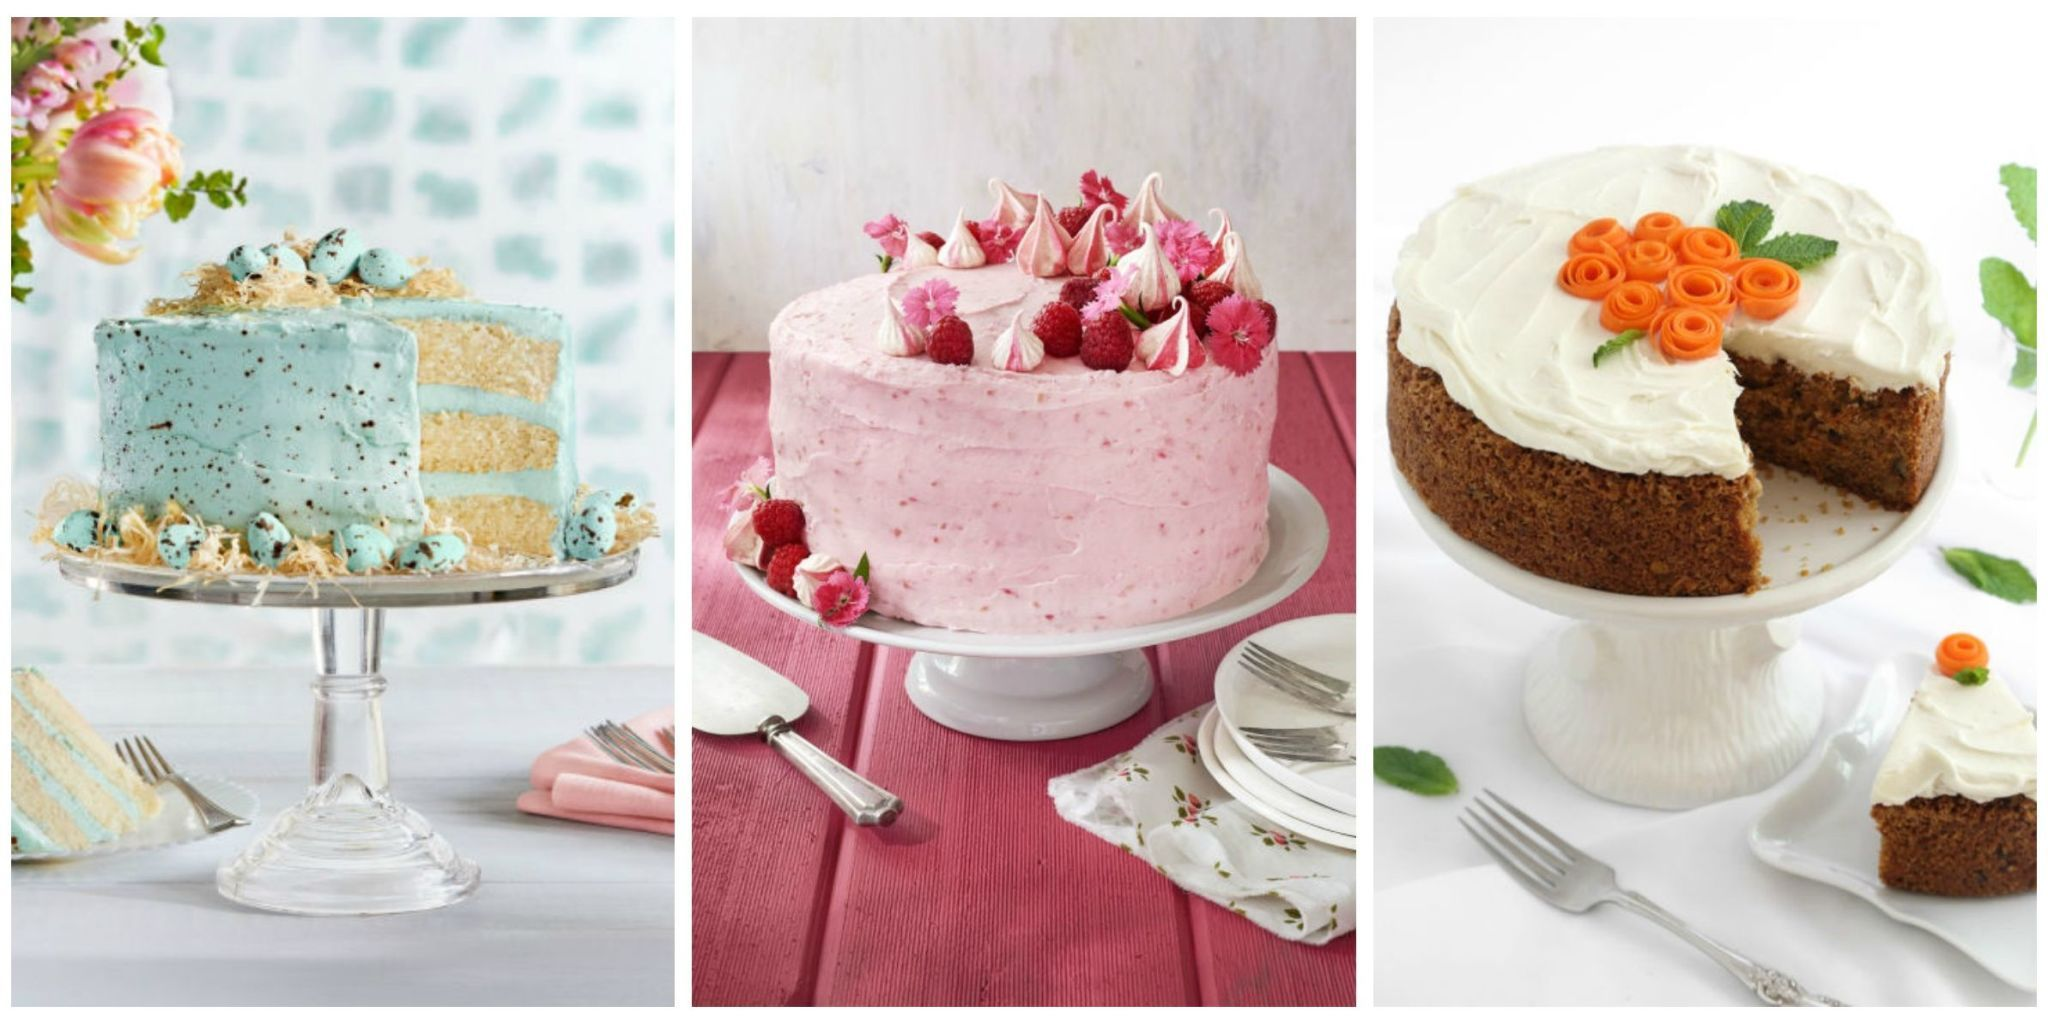 Turn a basic cake into a treat worthy of a celebration with some buttercream frosting and a few creative details. Plus try our best cake recipes ever! & 15 Beautiful Cake Decorating Ideas - How to Decorate a Pretty Cake